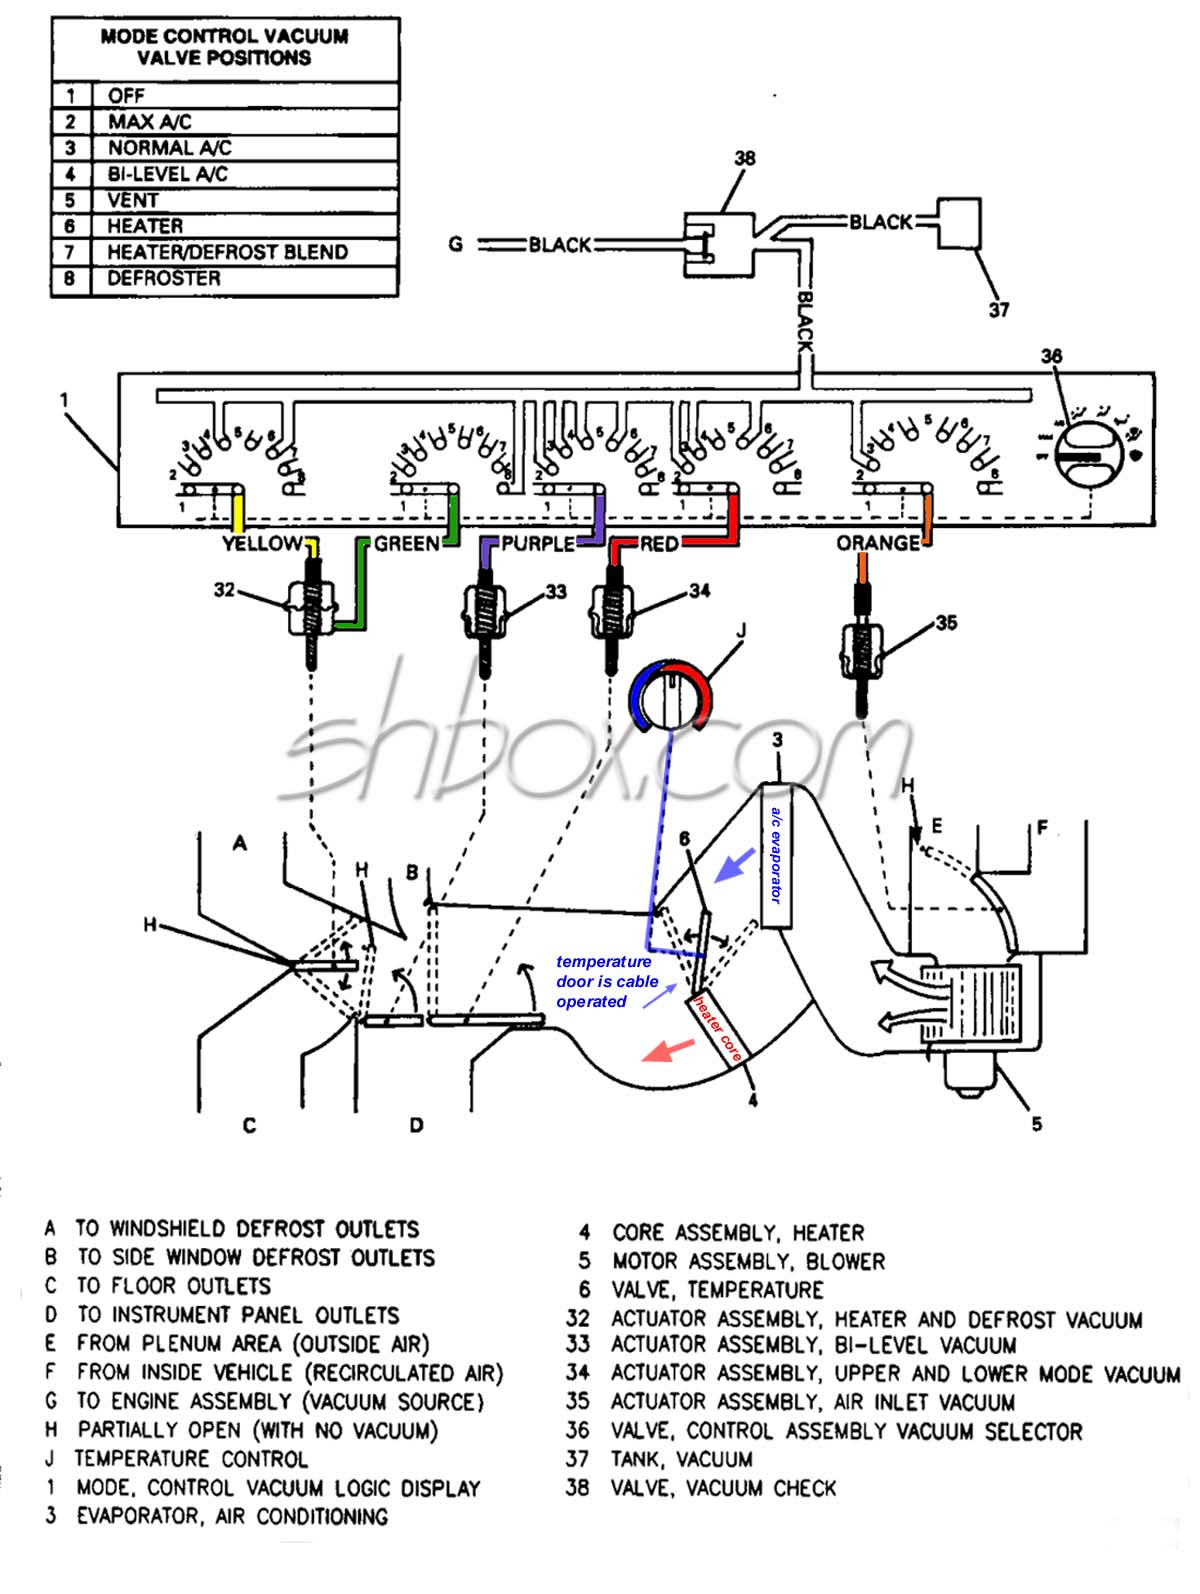 94 96 b body vacuum diagram chevy impala ss forum Chevy Impala Actuator Replacement Impala Actuator  sc 1 st  MiFinder : 2006 chevy impala stereo wiring diagram - yogabreezes.com